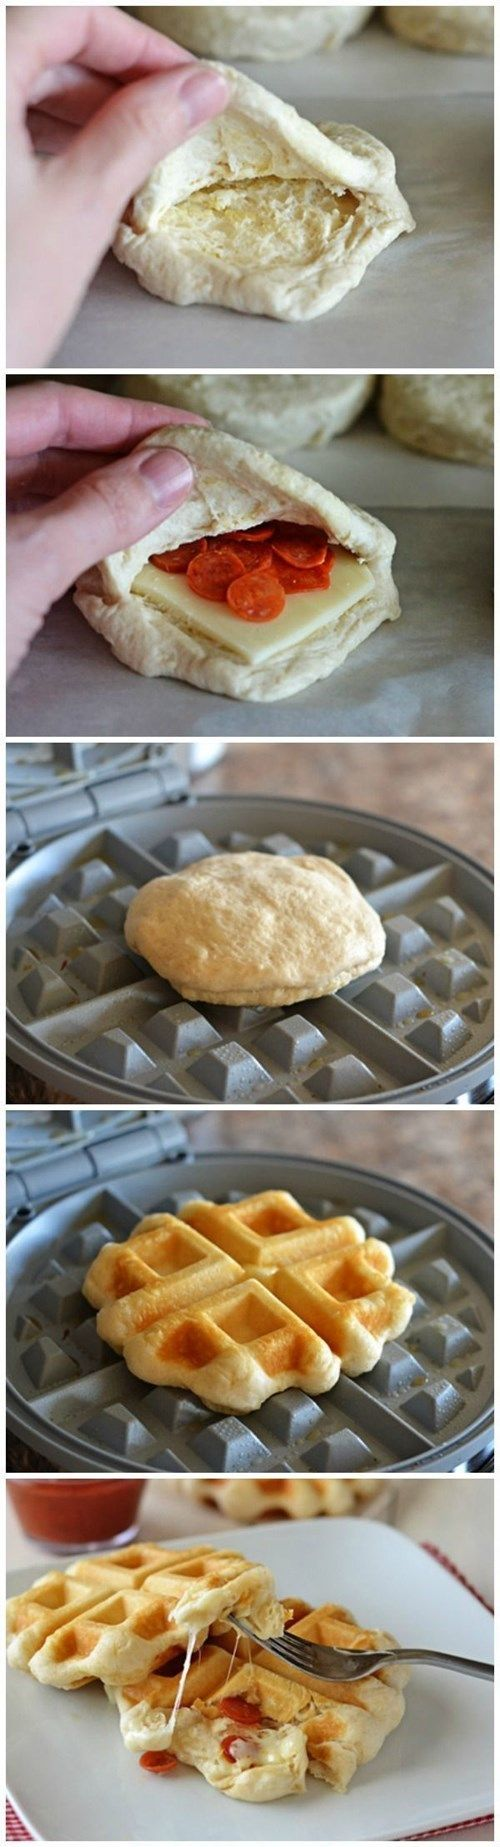 Where Has the Pizza Waffle Been All My Life- Fail Blog Seriously? What can you not do with a waffle maker?